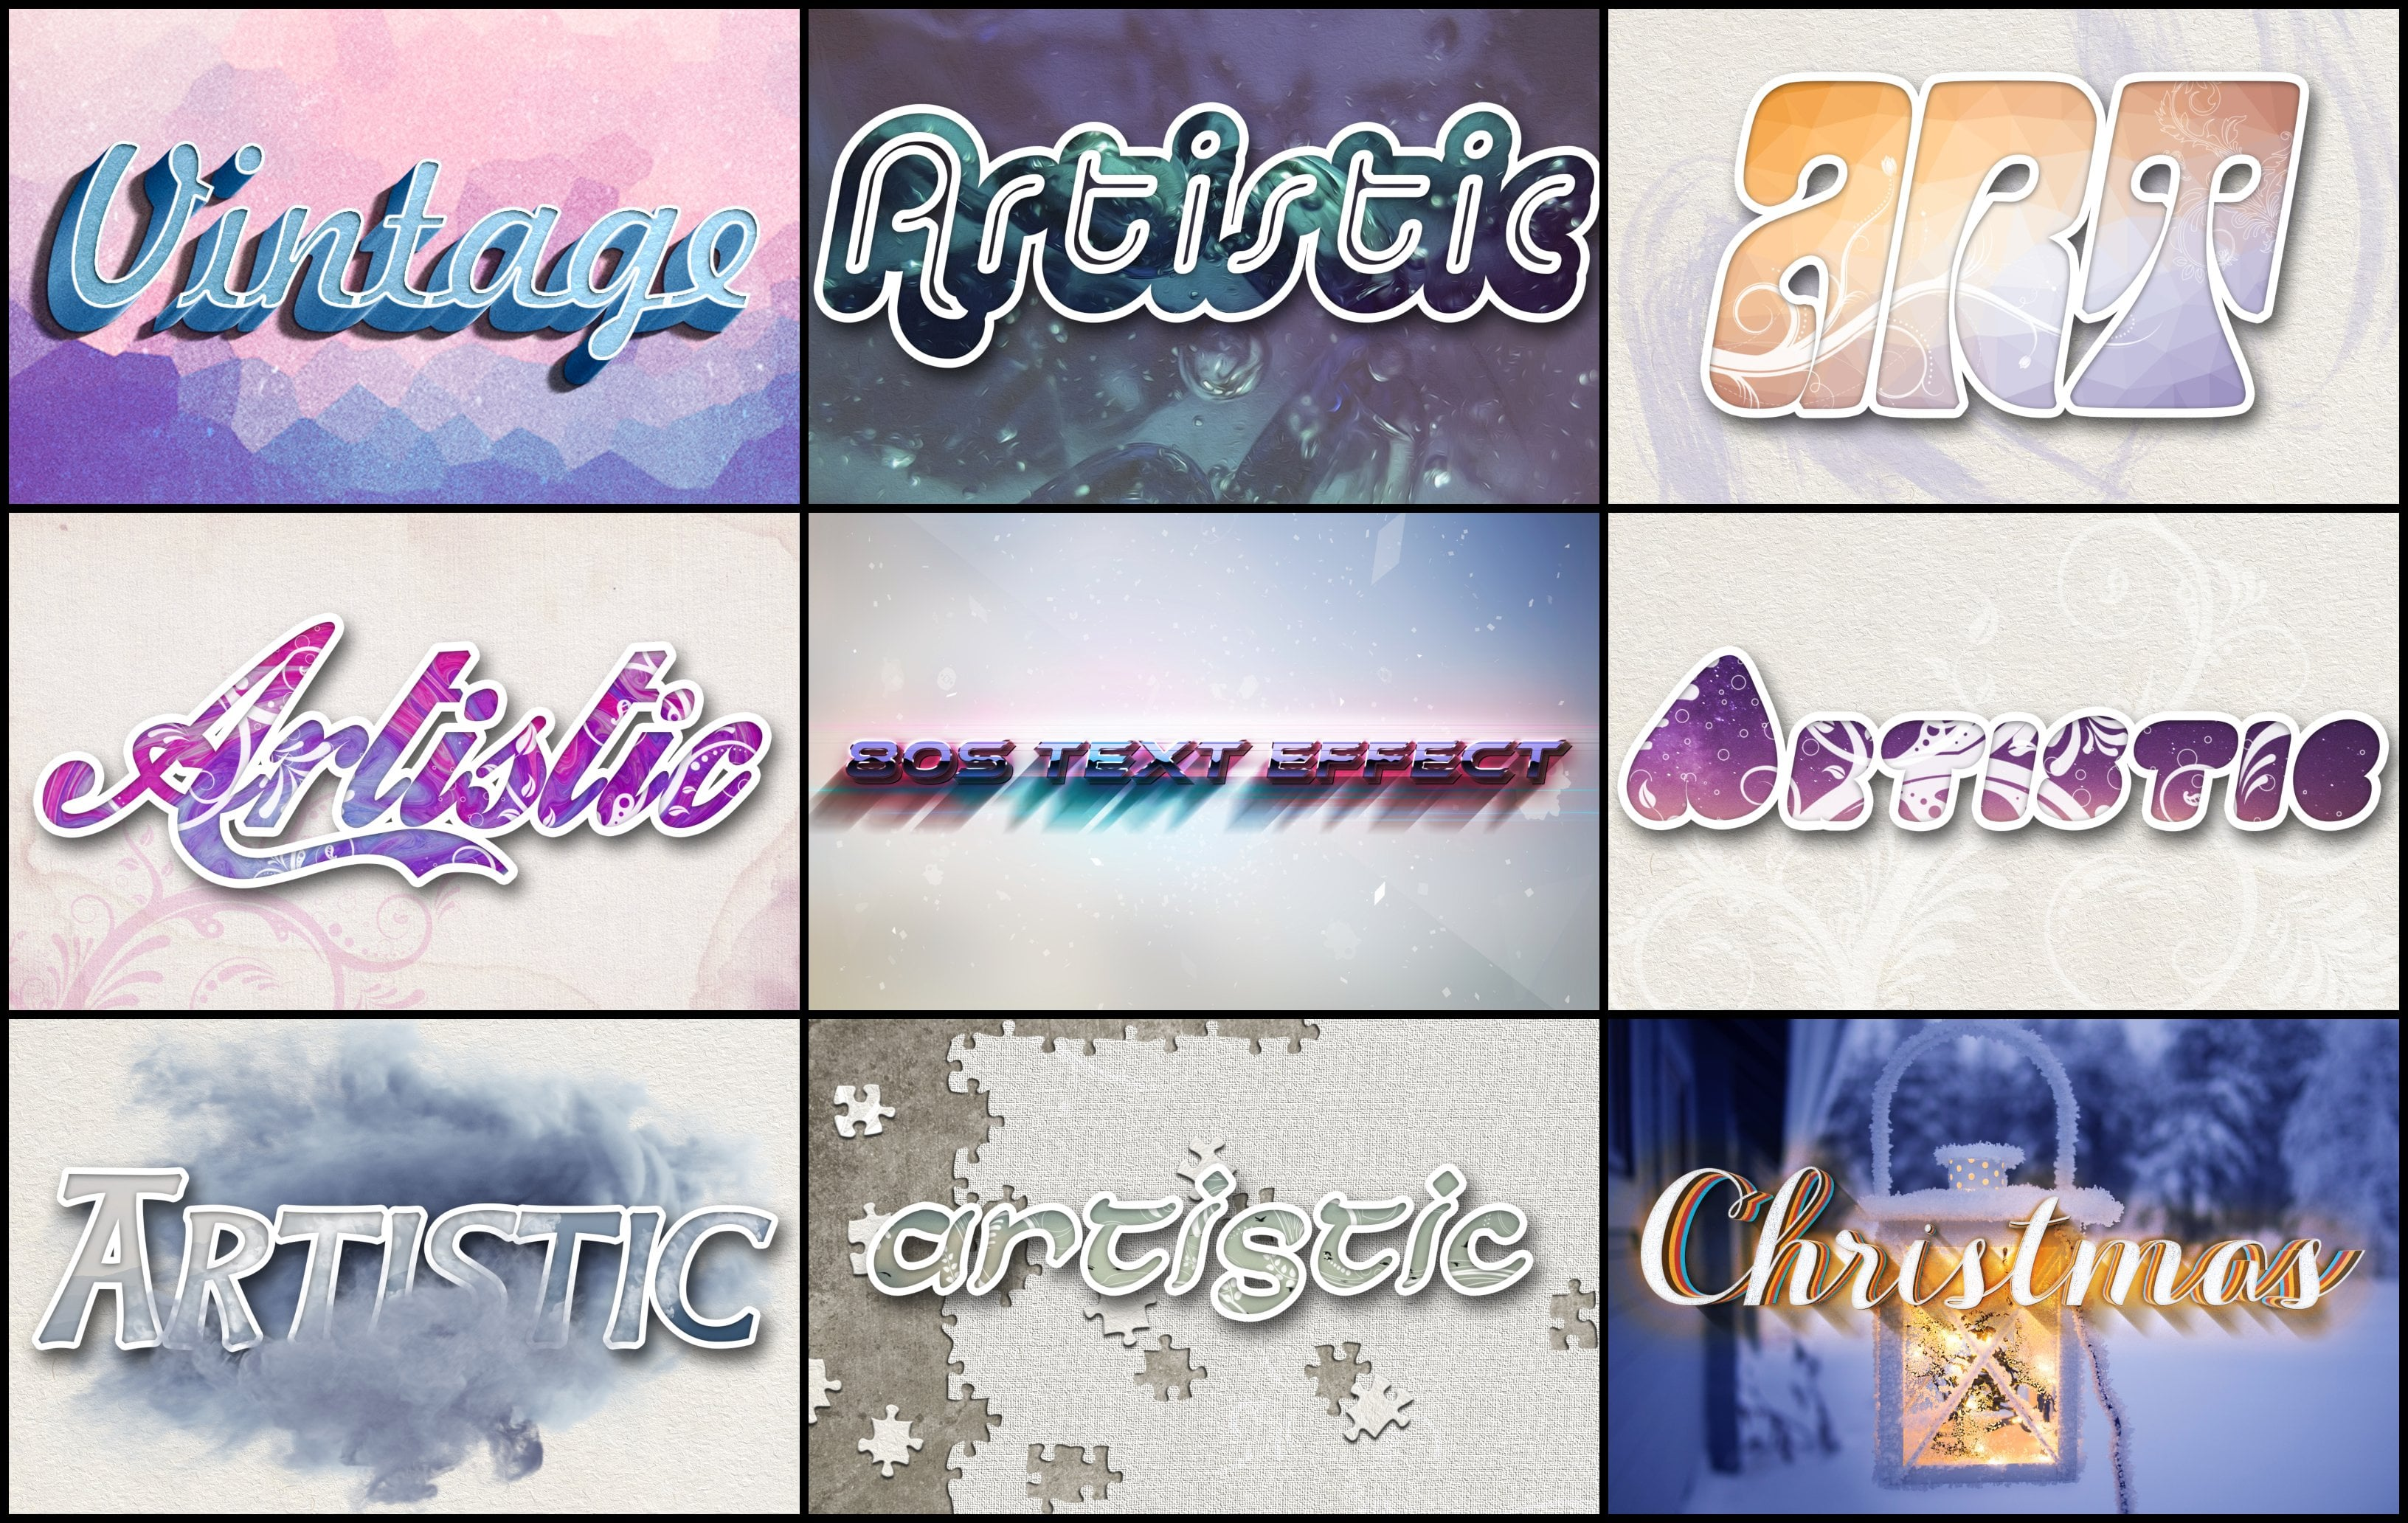 Photoshop Elements Text Effects - 40 Different Styles - 2 1